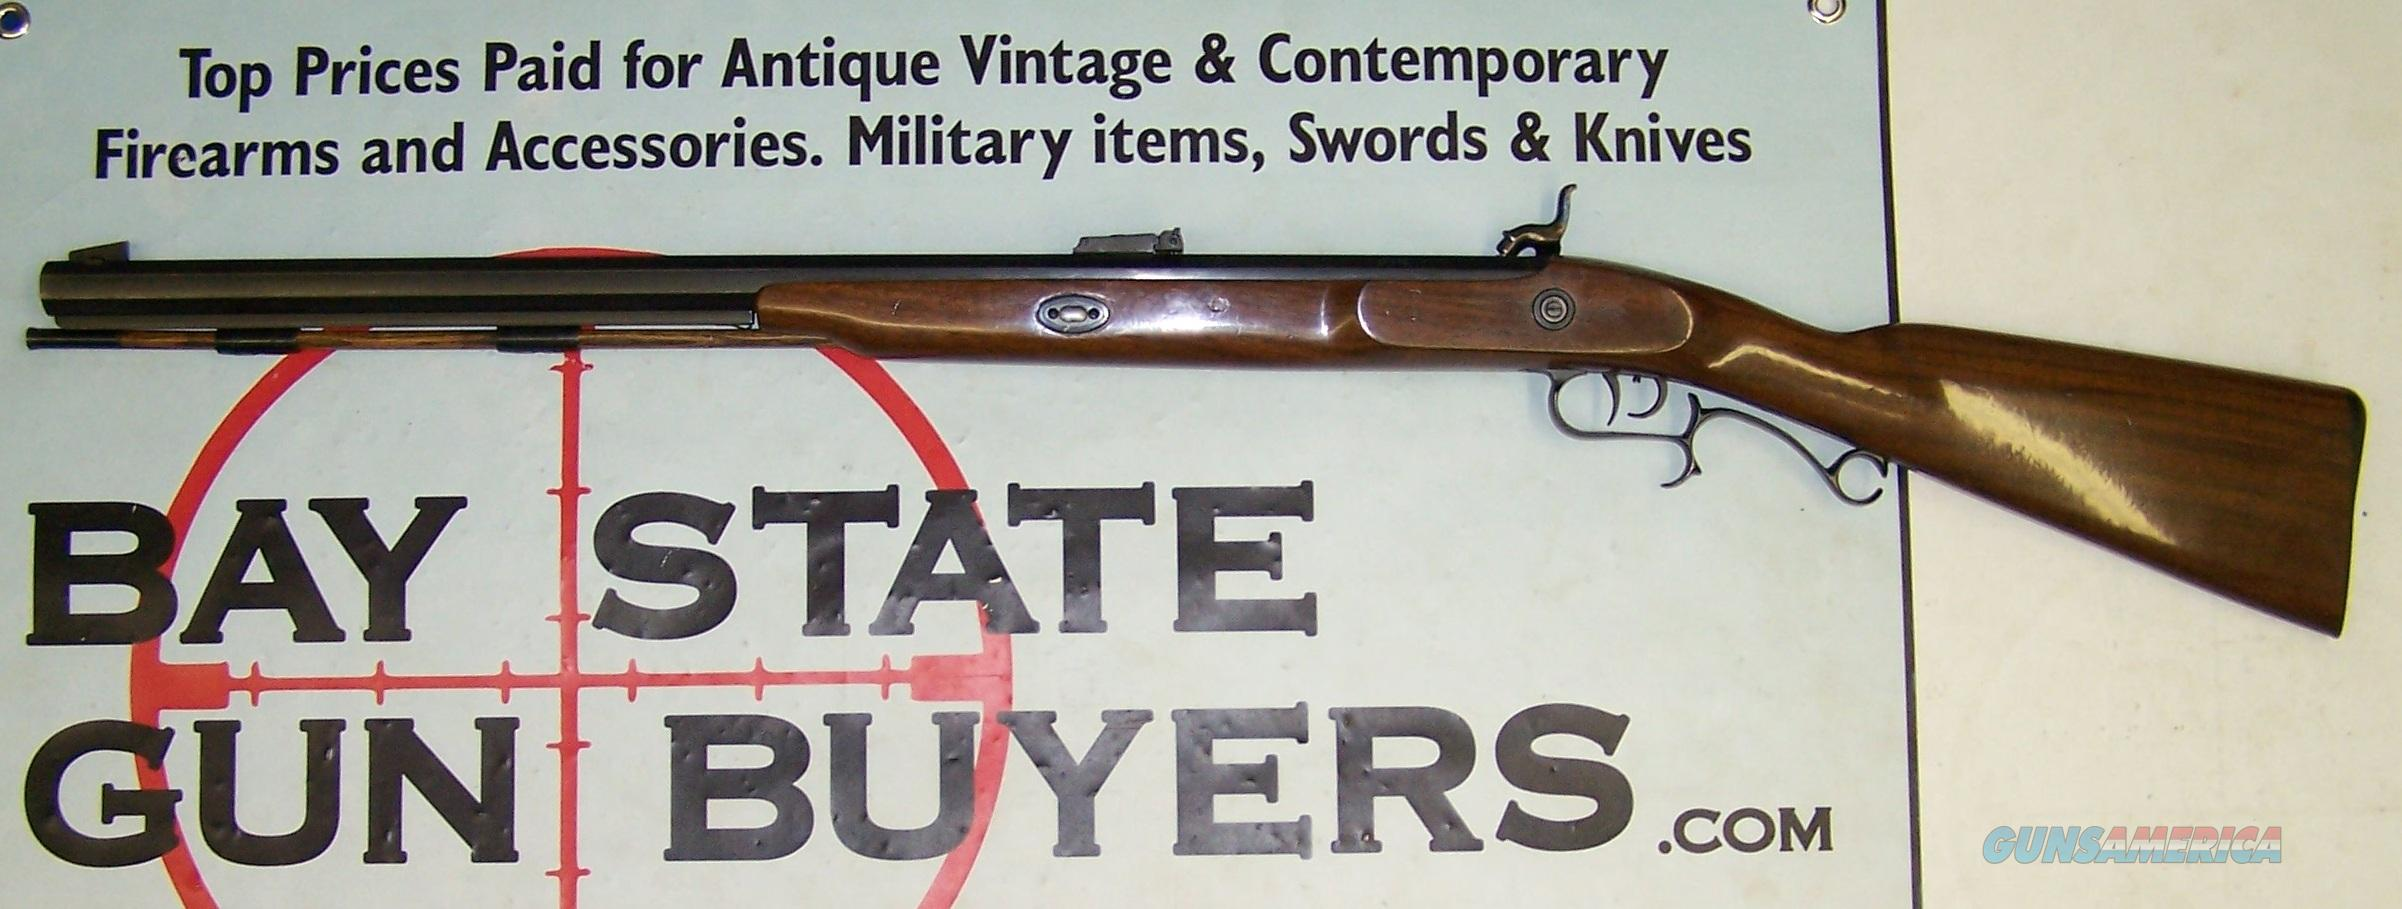 Thompson Center Model 56 SB Muzzleloader Black Powder Rifle   Guns > Rifles > Thompson Center Muzzleloaders > Hawken Style